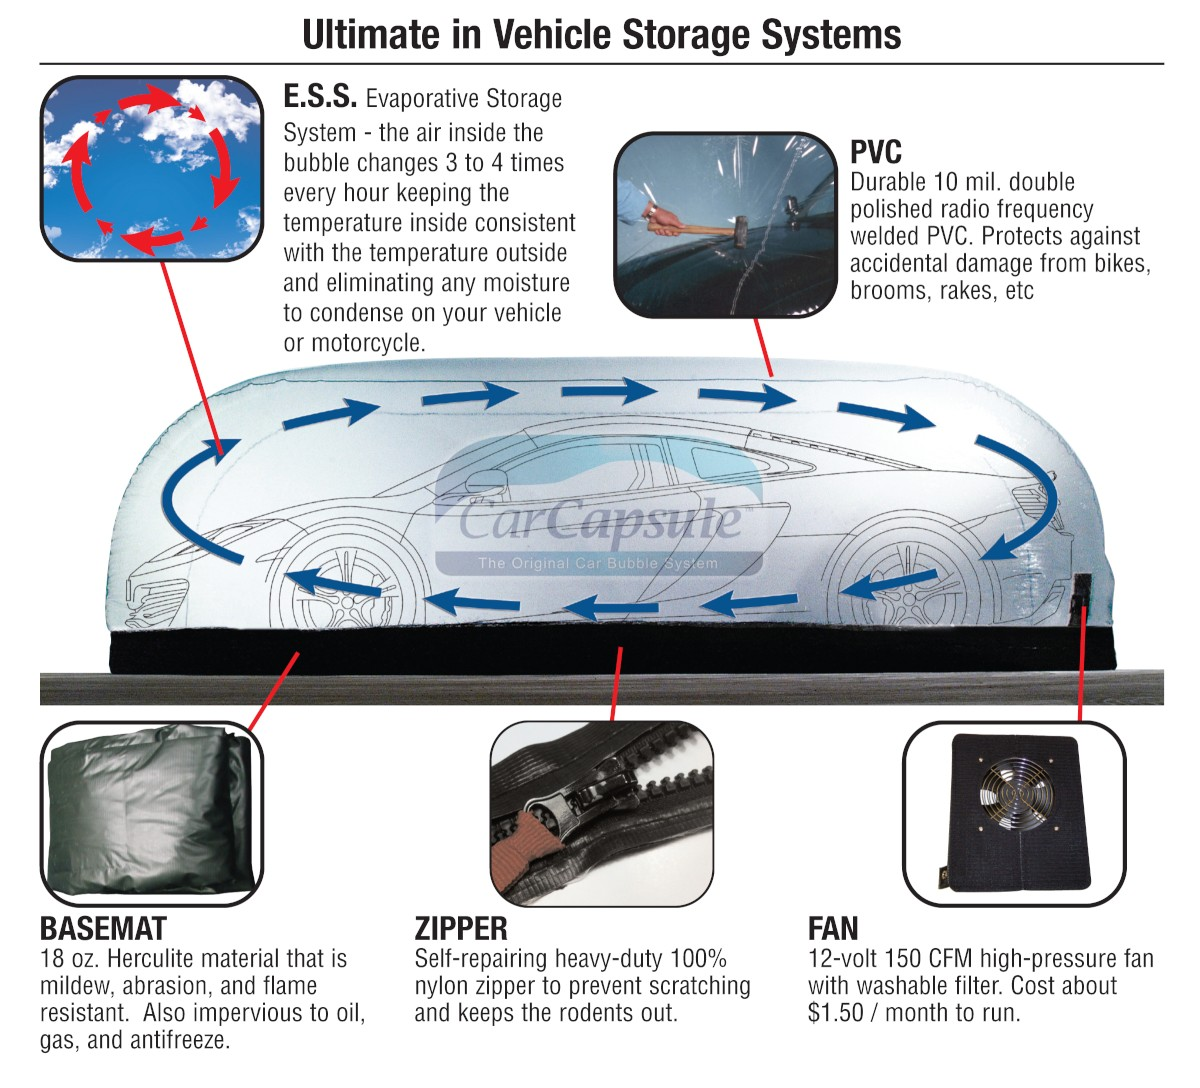 CarCapsule_flow_how_it_works02_9